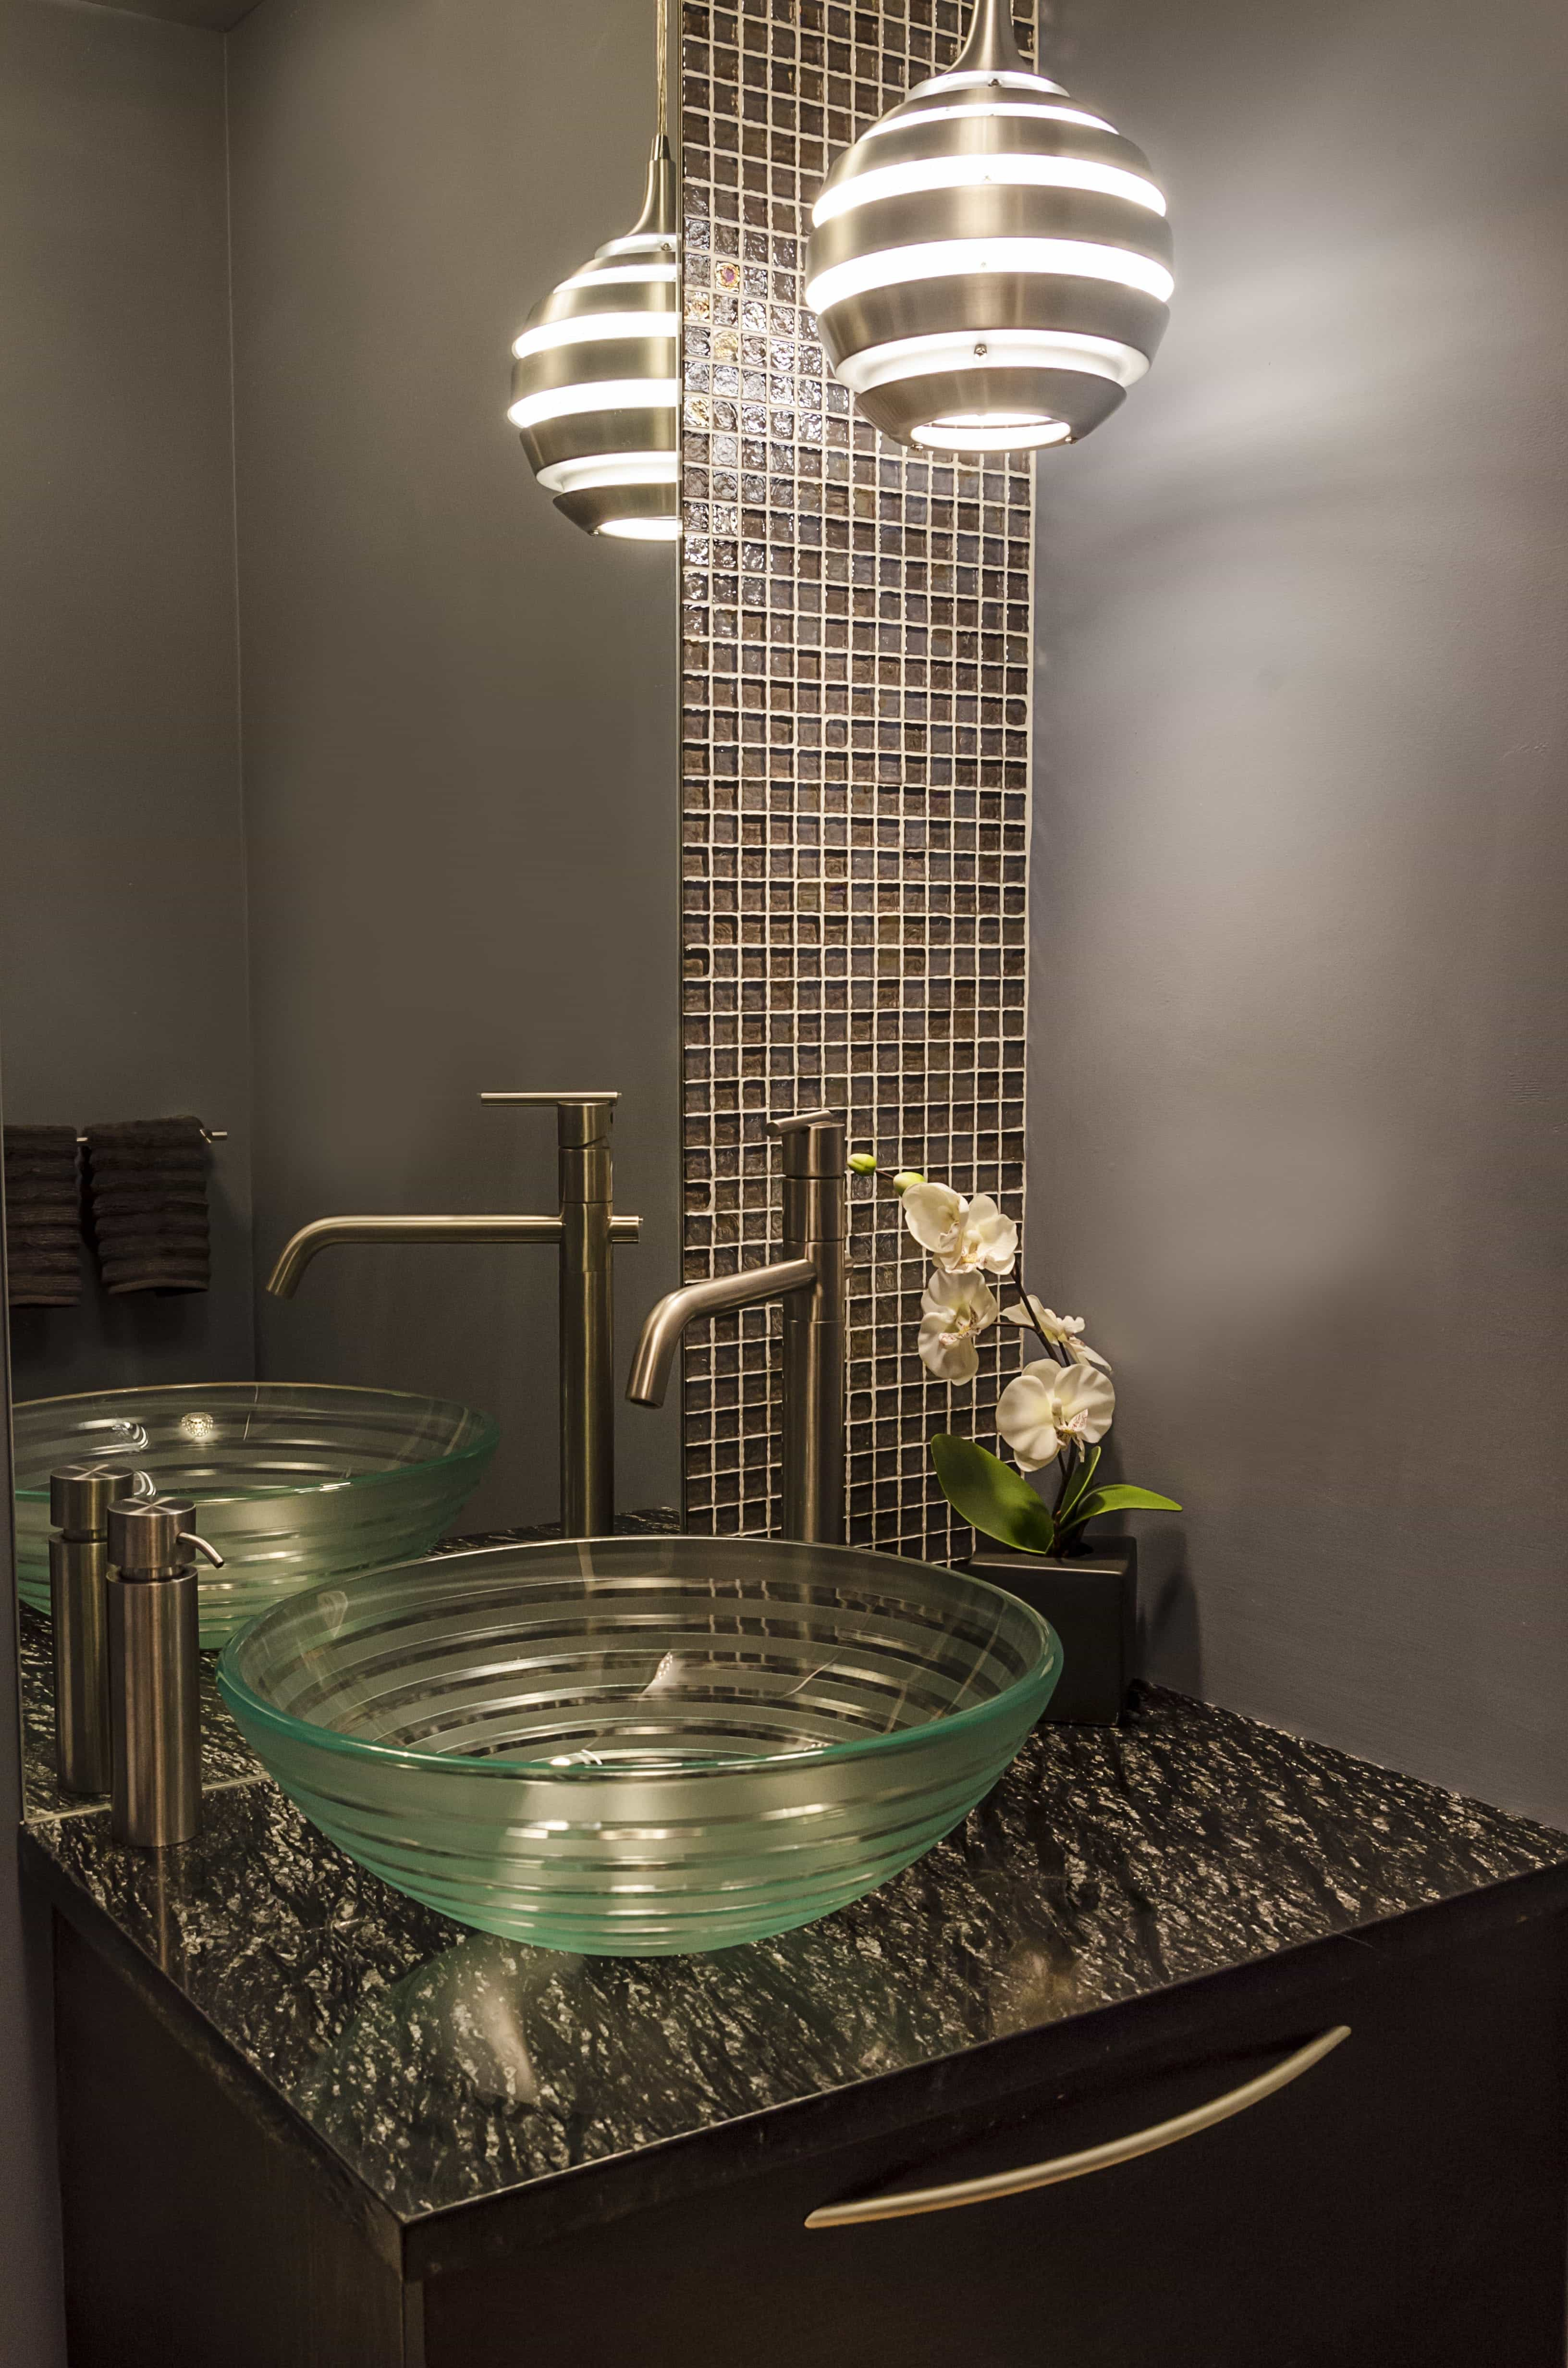 Pearlized Glass Tile And Mirror With A Glass Vessel Sink And Ultramodern Lighting (Image 18 of 20)